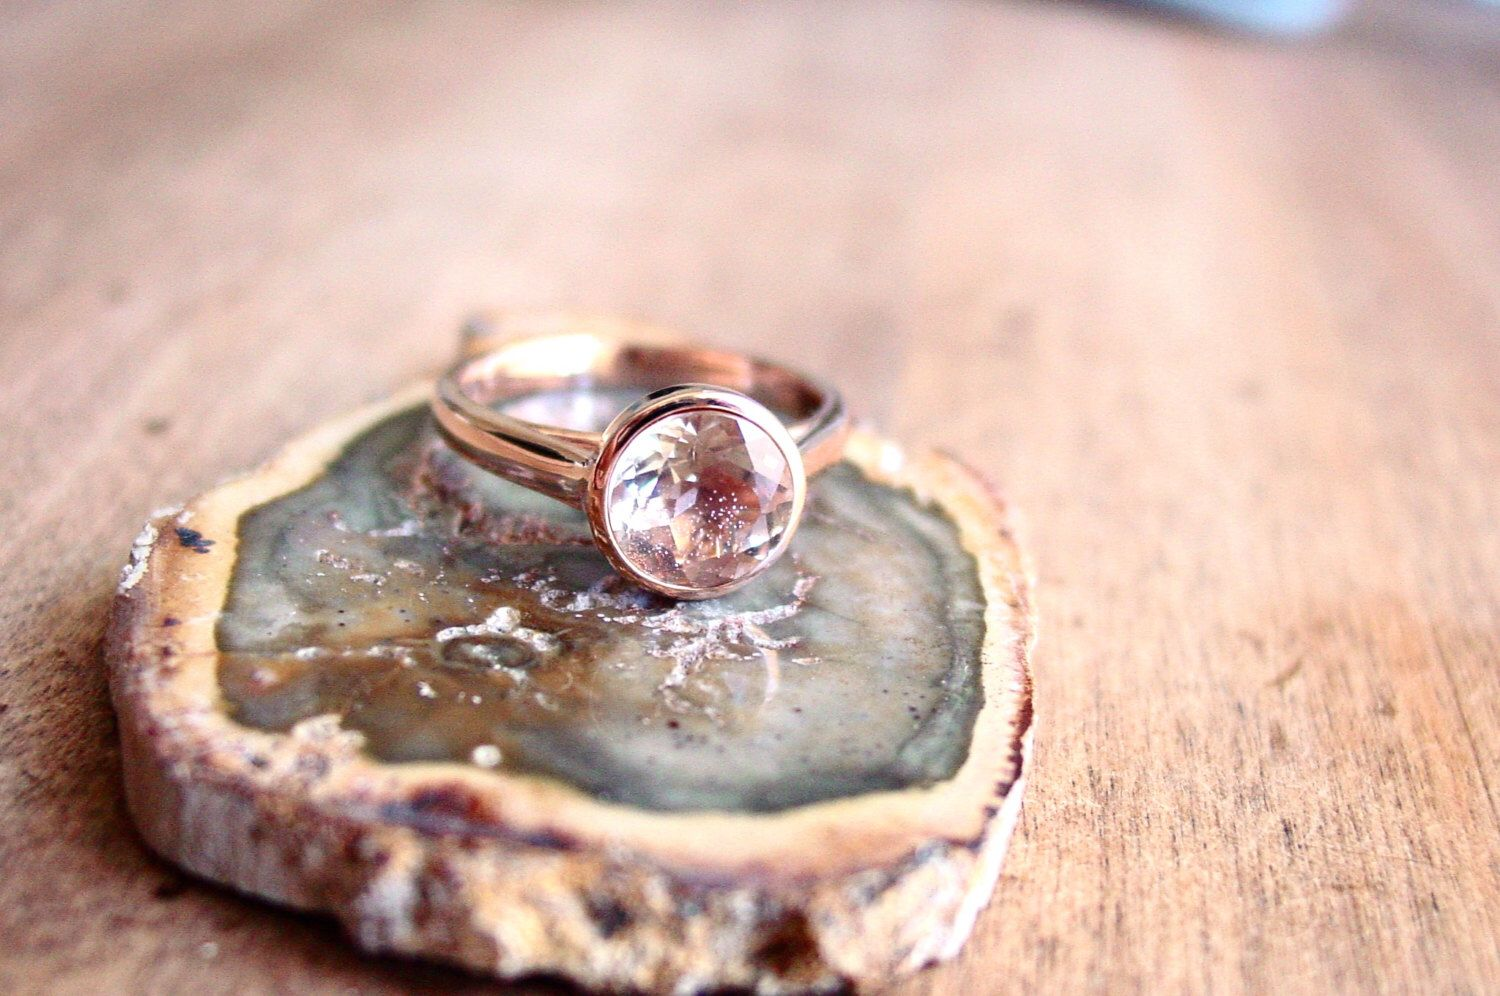 Sunstone Diamond 14k Rose Gold Engagement Ring Here Comes the Sun Select Your Stone by ResaWilkinson on Etsy https://www.etsy.com/listing/268162318/sunstone-diamond-14k-rose-gold